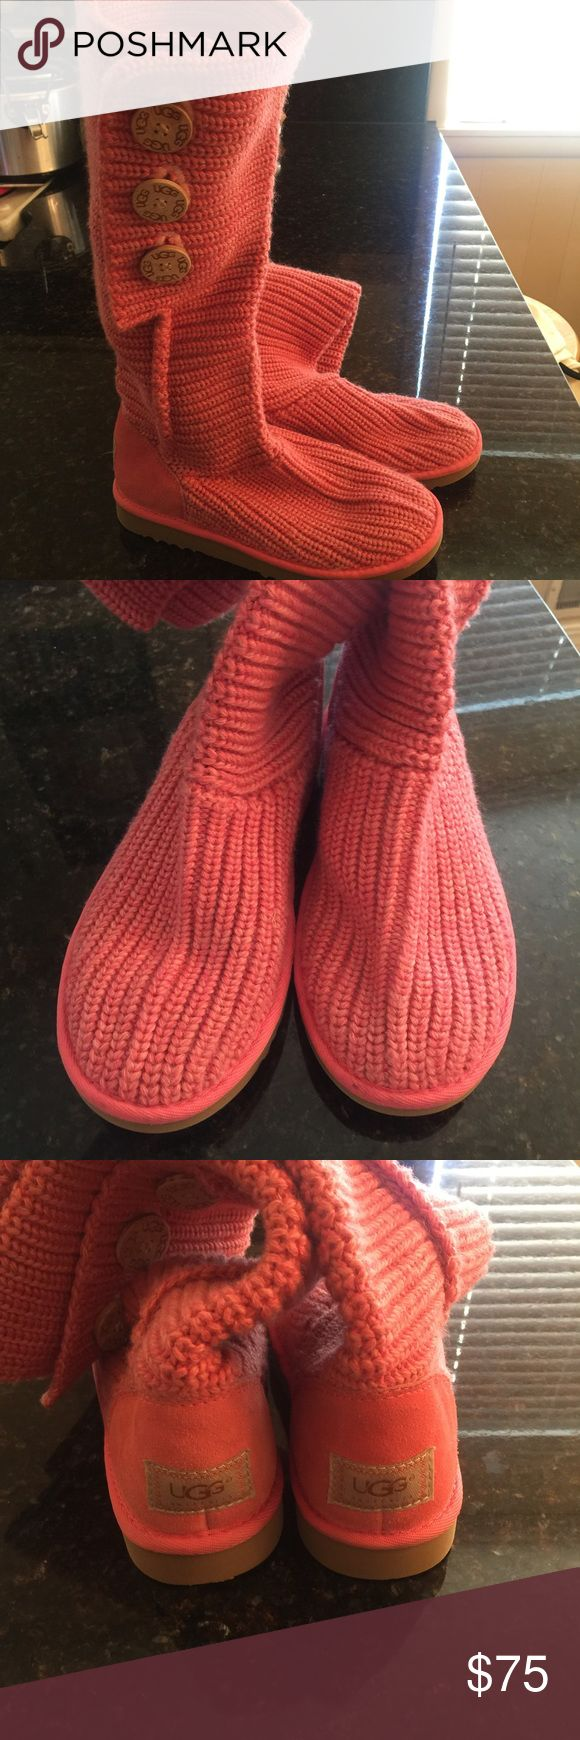 UGG Classic Cardy Sweater Women's Boots sz 7 Pink Adorable pink sweater UGGS perfect in spring & summer. light weight and comfortable all year round. Very little wear, looks new. UGG Shoes Over the Knee Boots